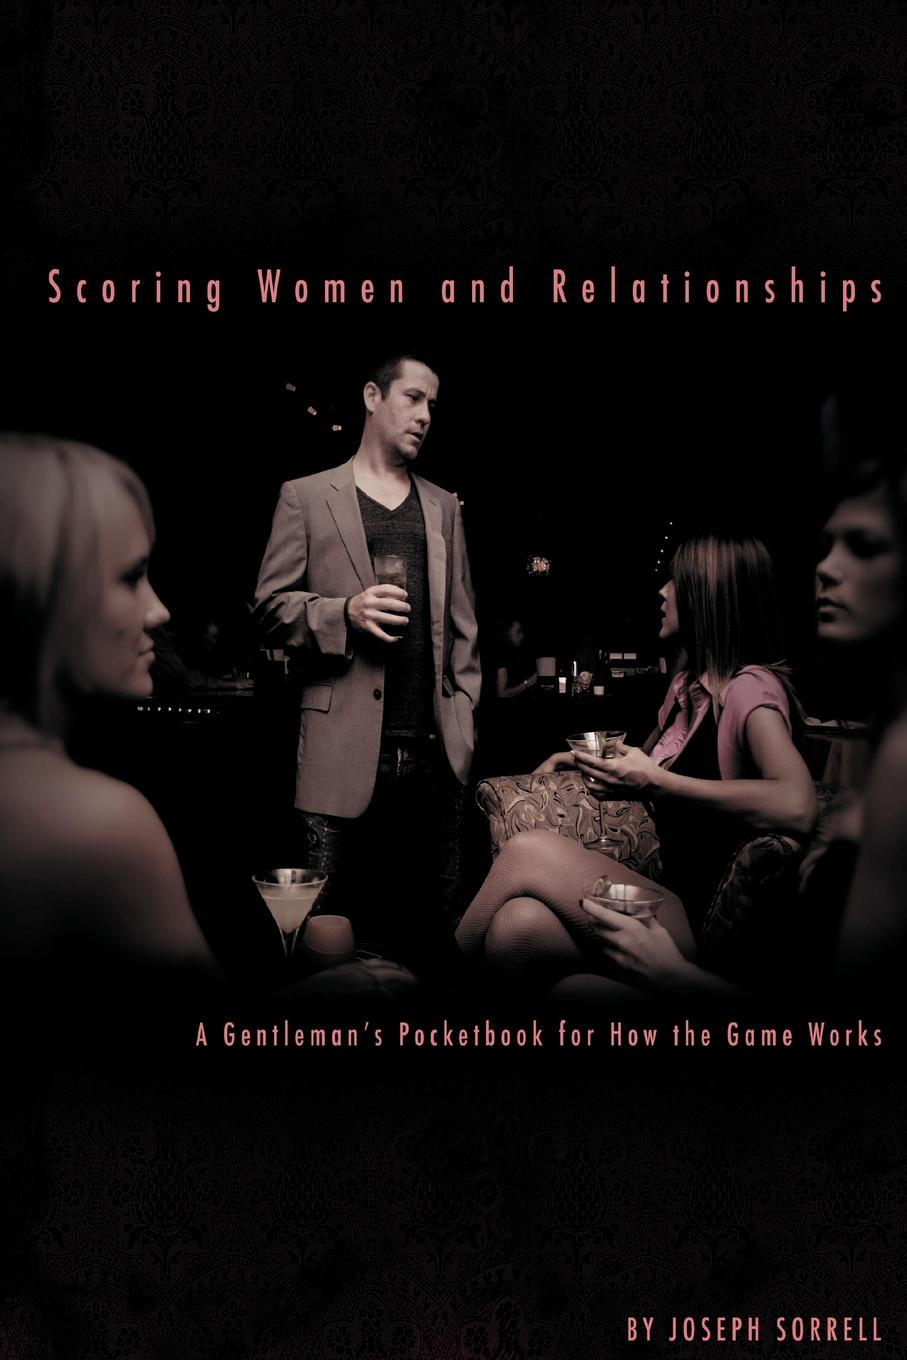 Joseph Sorrell Scoring Women and Relationships. A Gentleman.s Pocketbook for How the Game Works